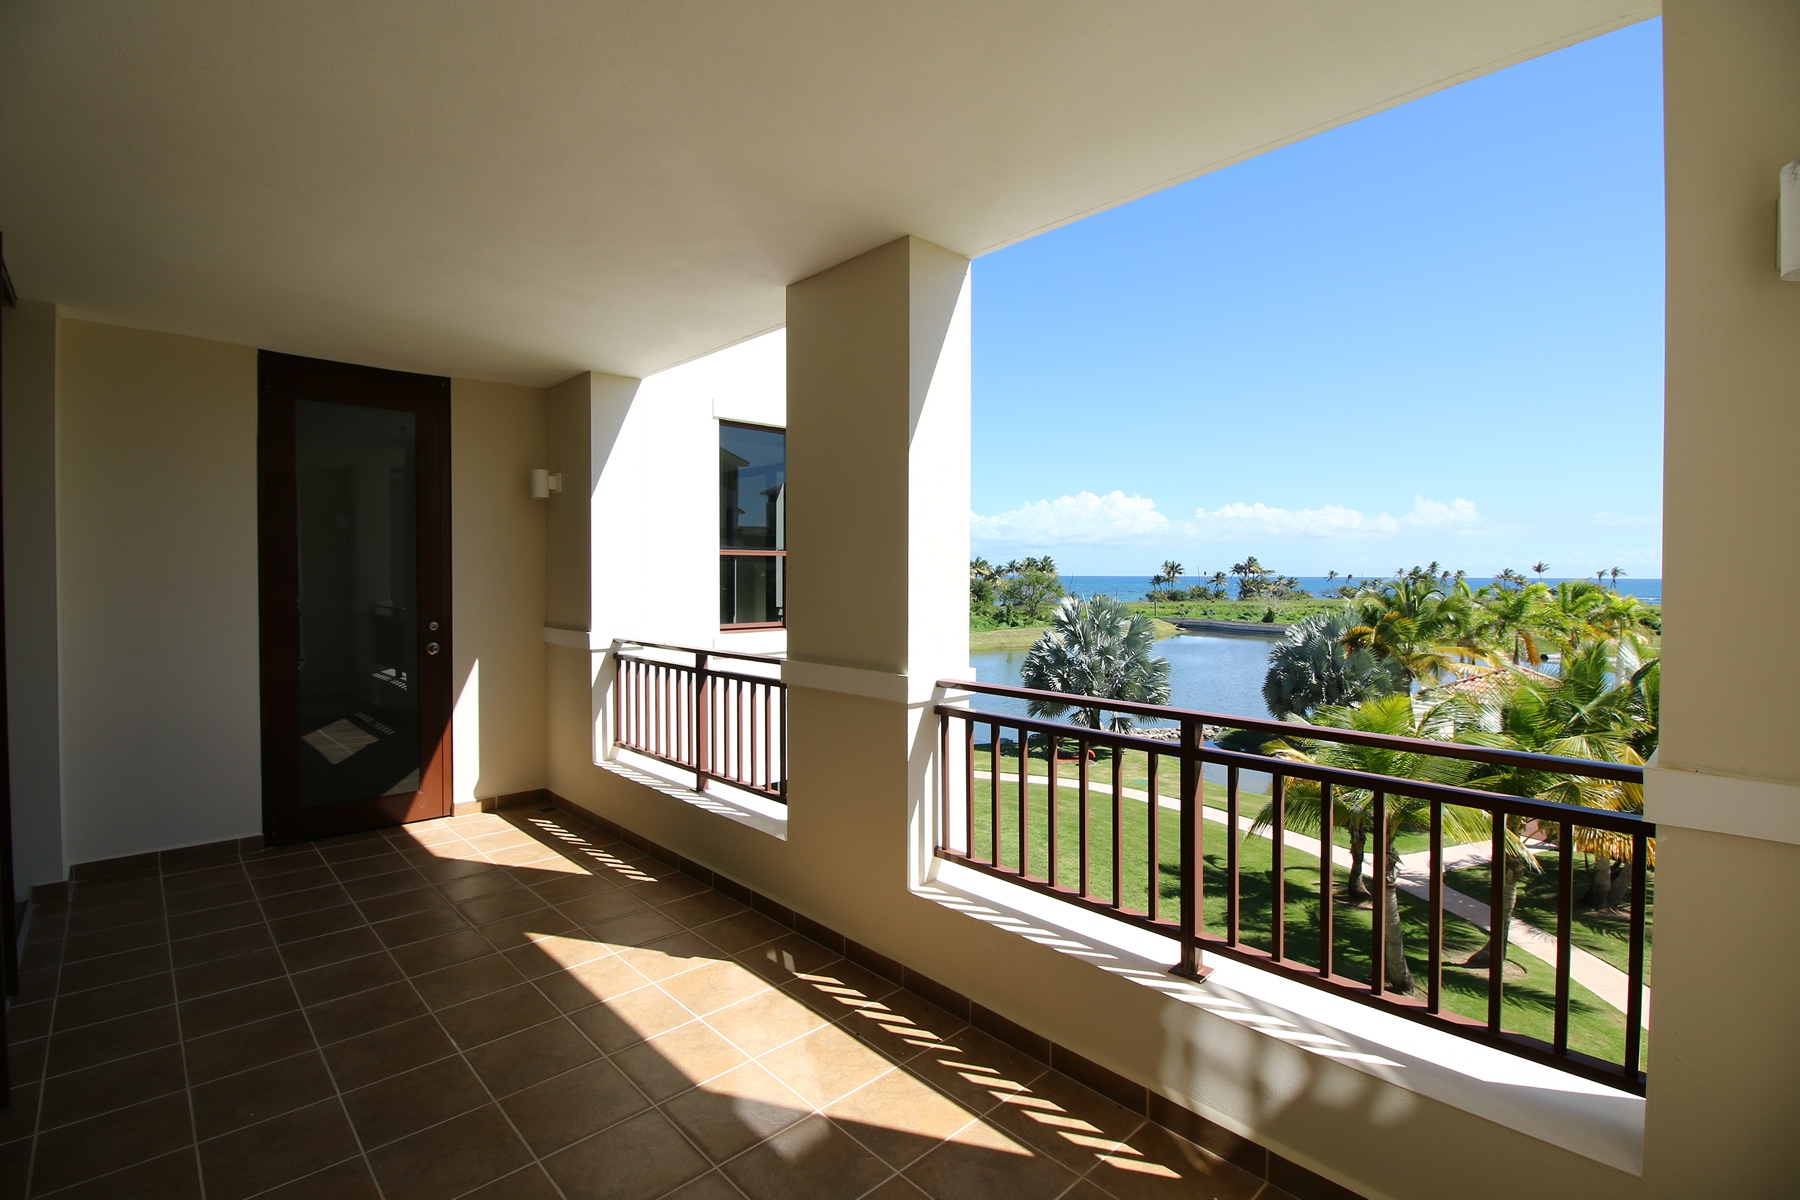 Additional photo for property listing at Residence 222 at 238 Candelero Drive 238 Candelero Drive, Apt 222 Solarea Beach Resort and Yacht Club Palmas Del Mar, Puerto Rico 00791 Puerto Rico